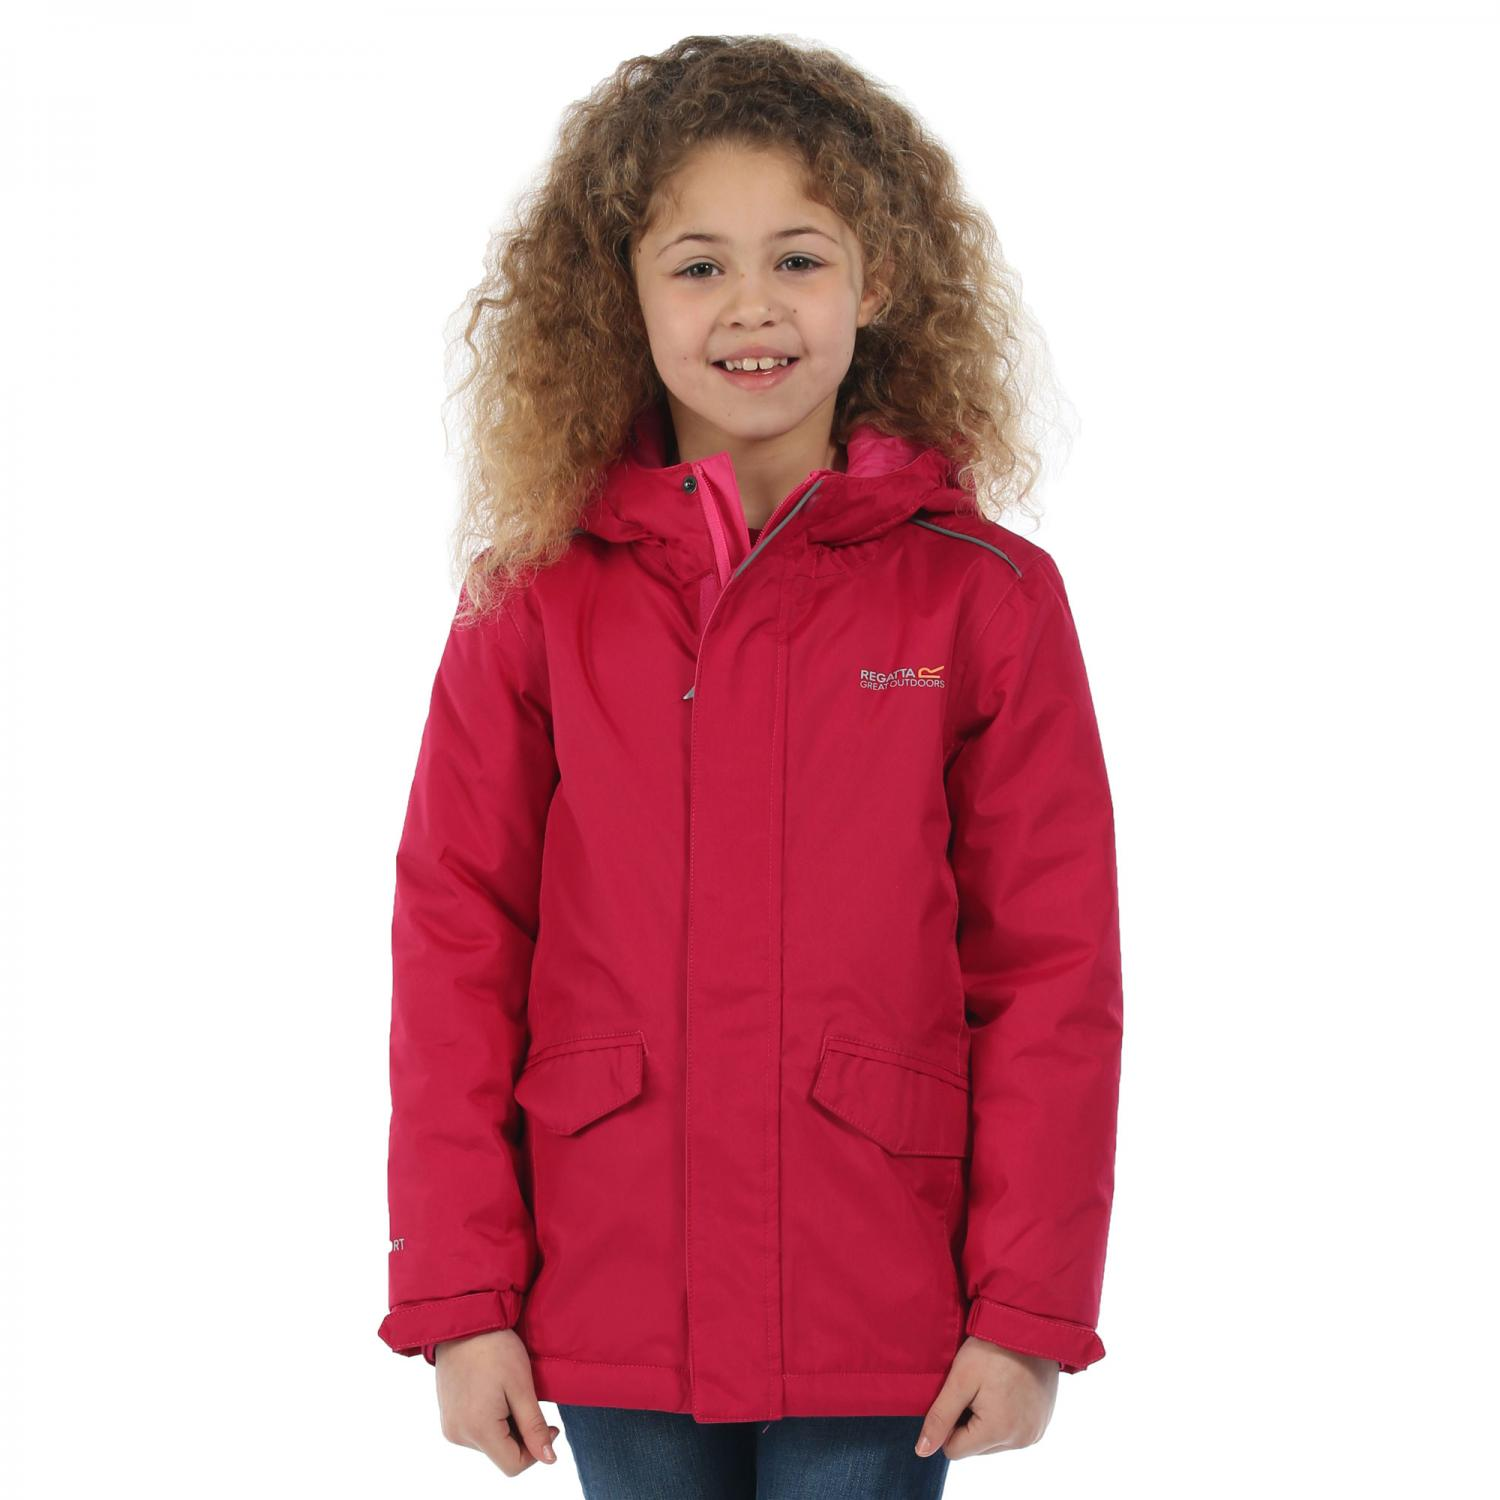 Hurdle Jacket Dark Cerise